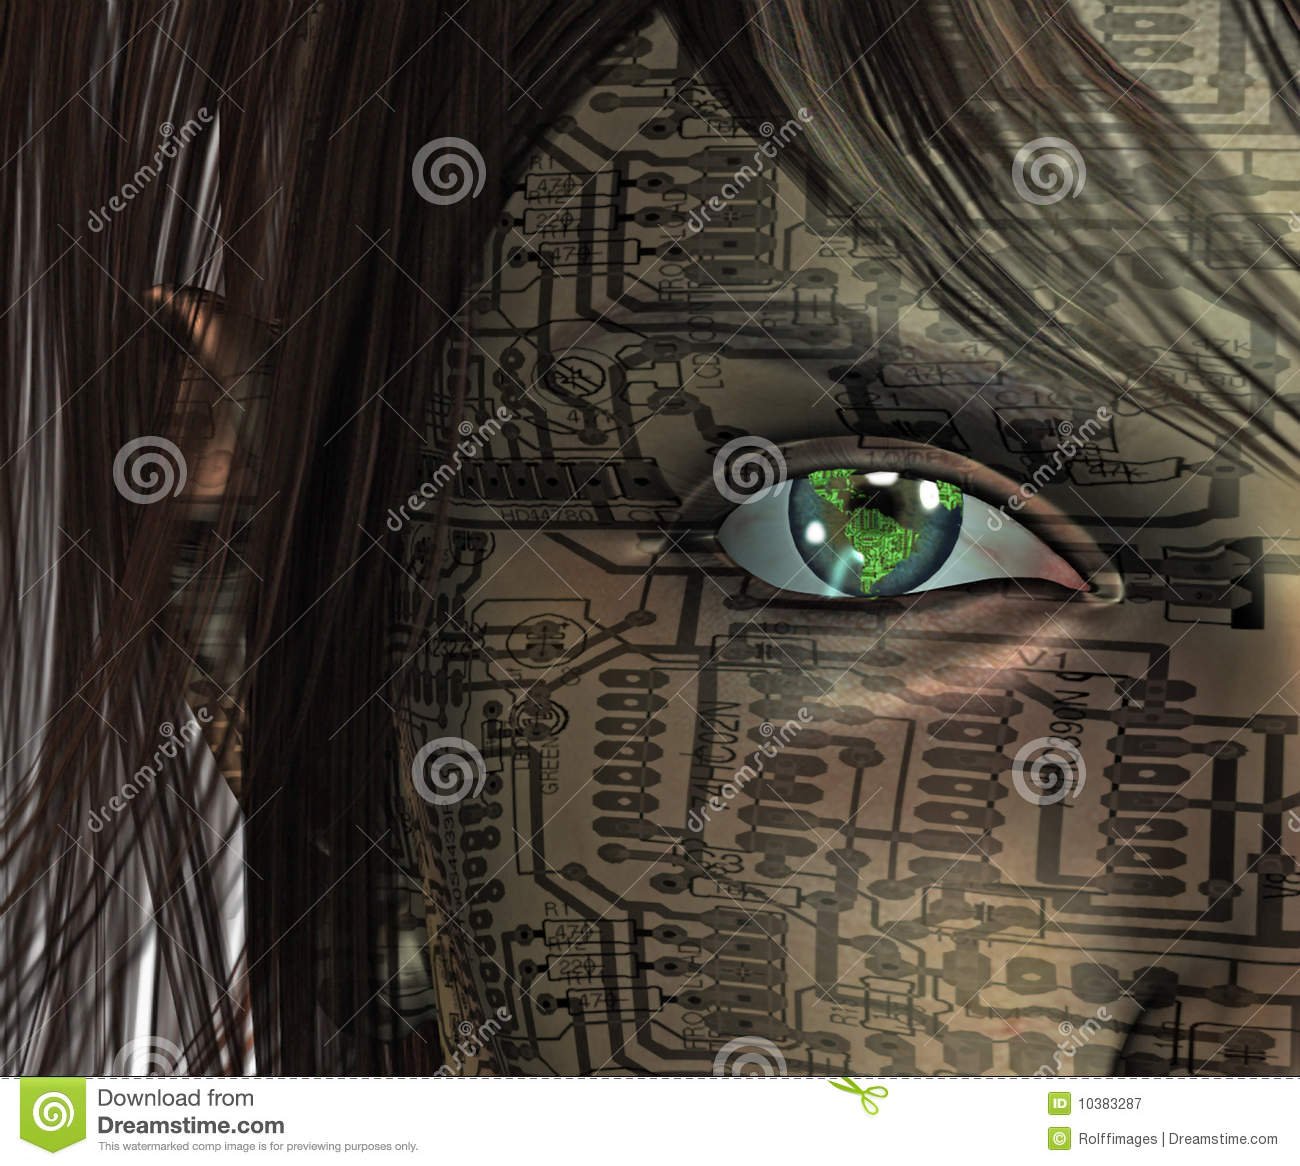 technology human royalty earth eye dreamstime preview